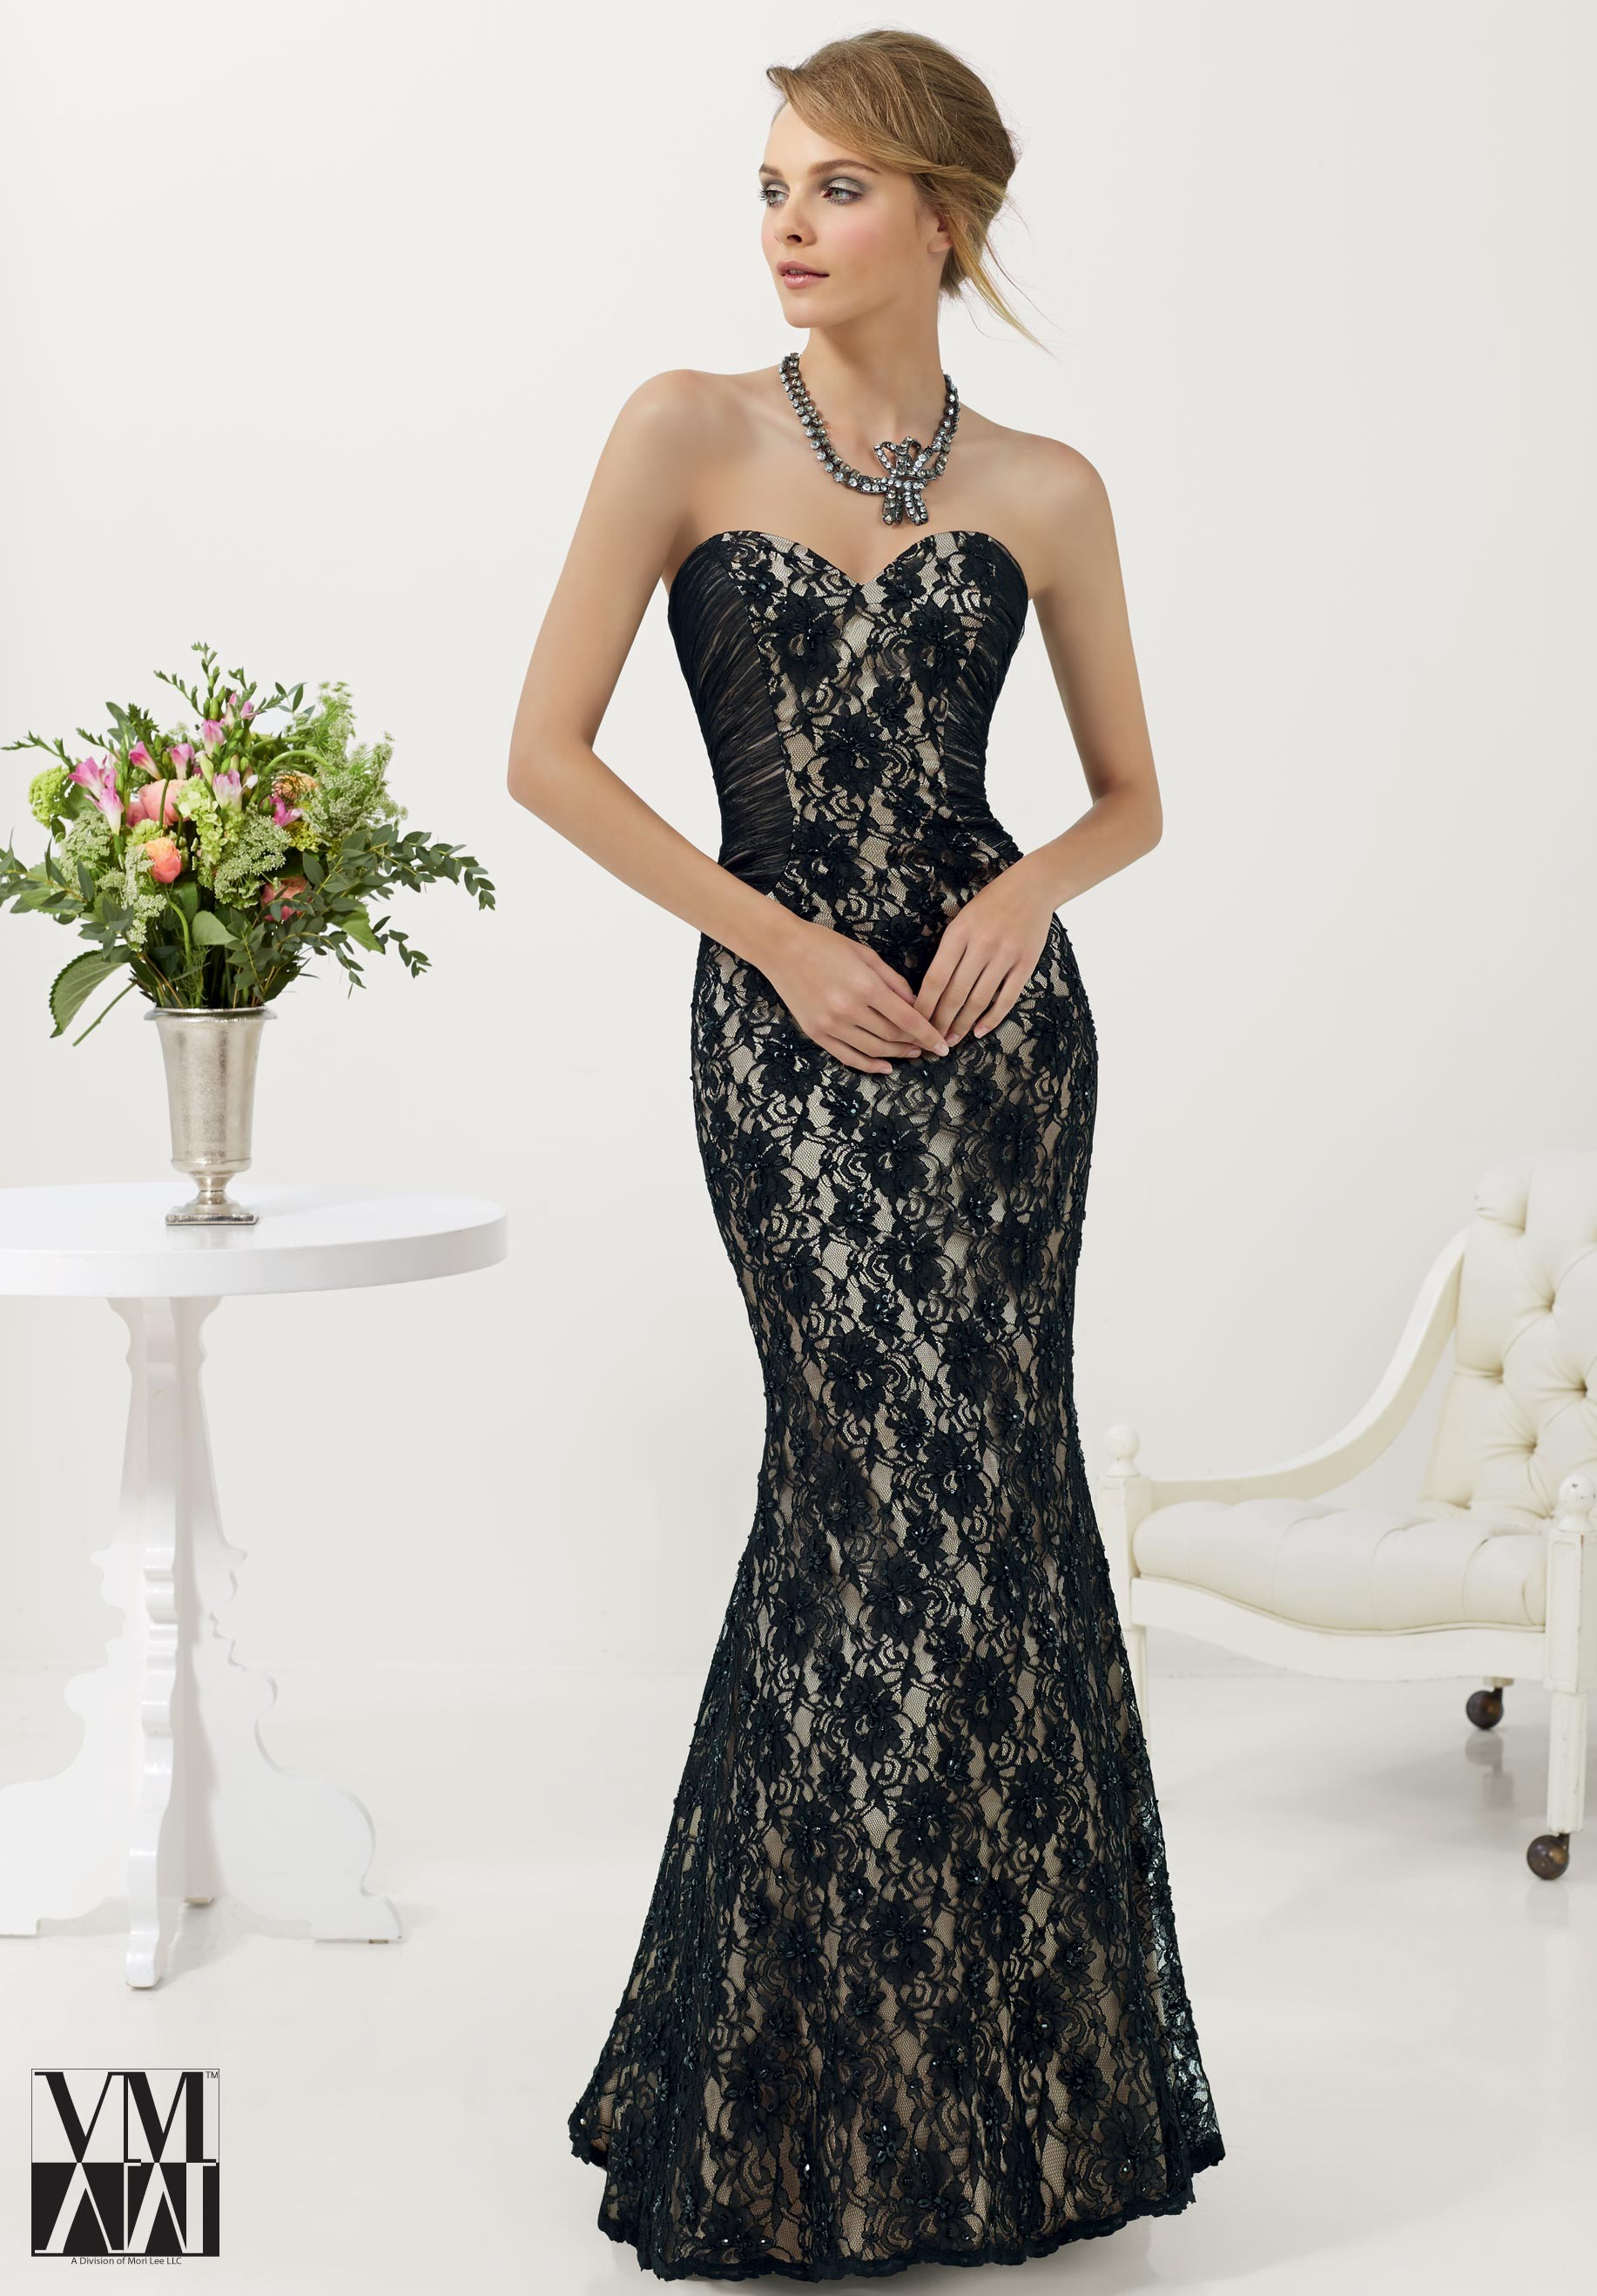 Rent Designer Dresses - Nini Dress